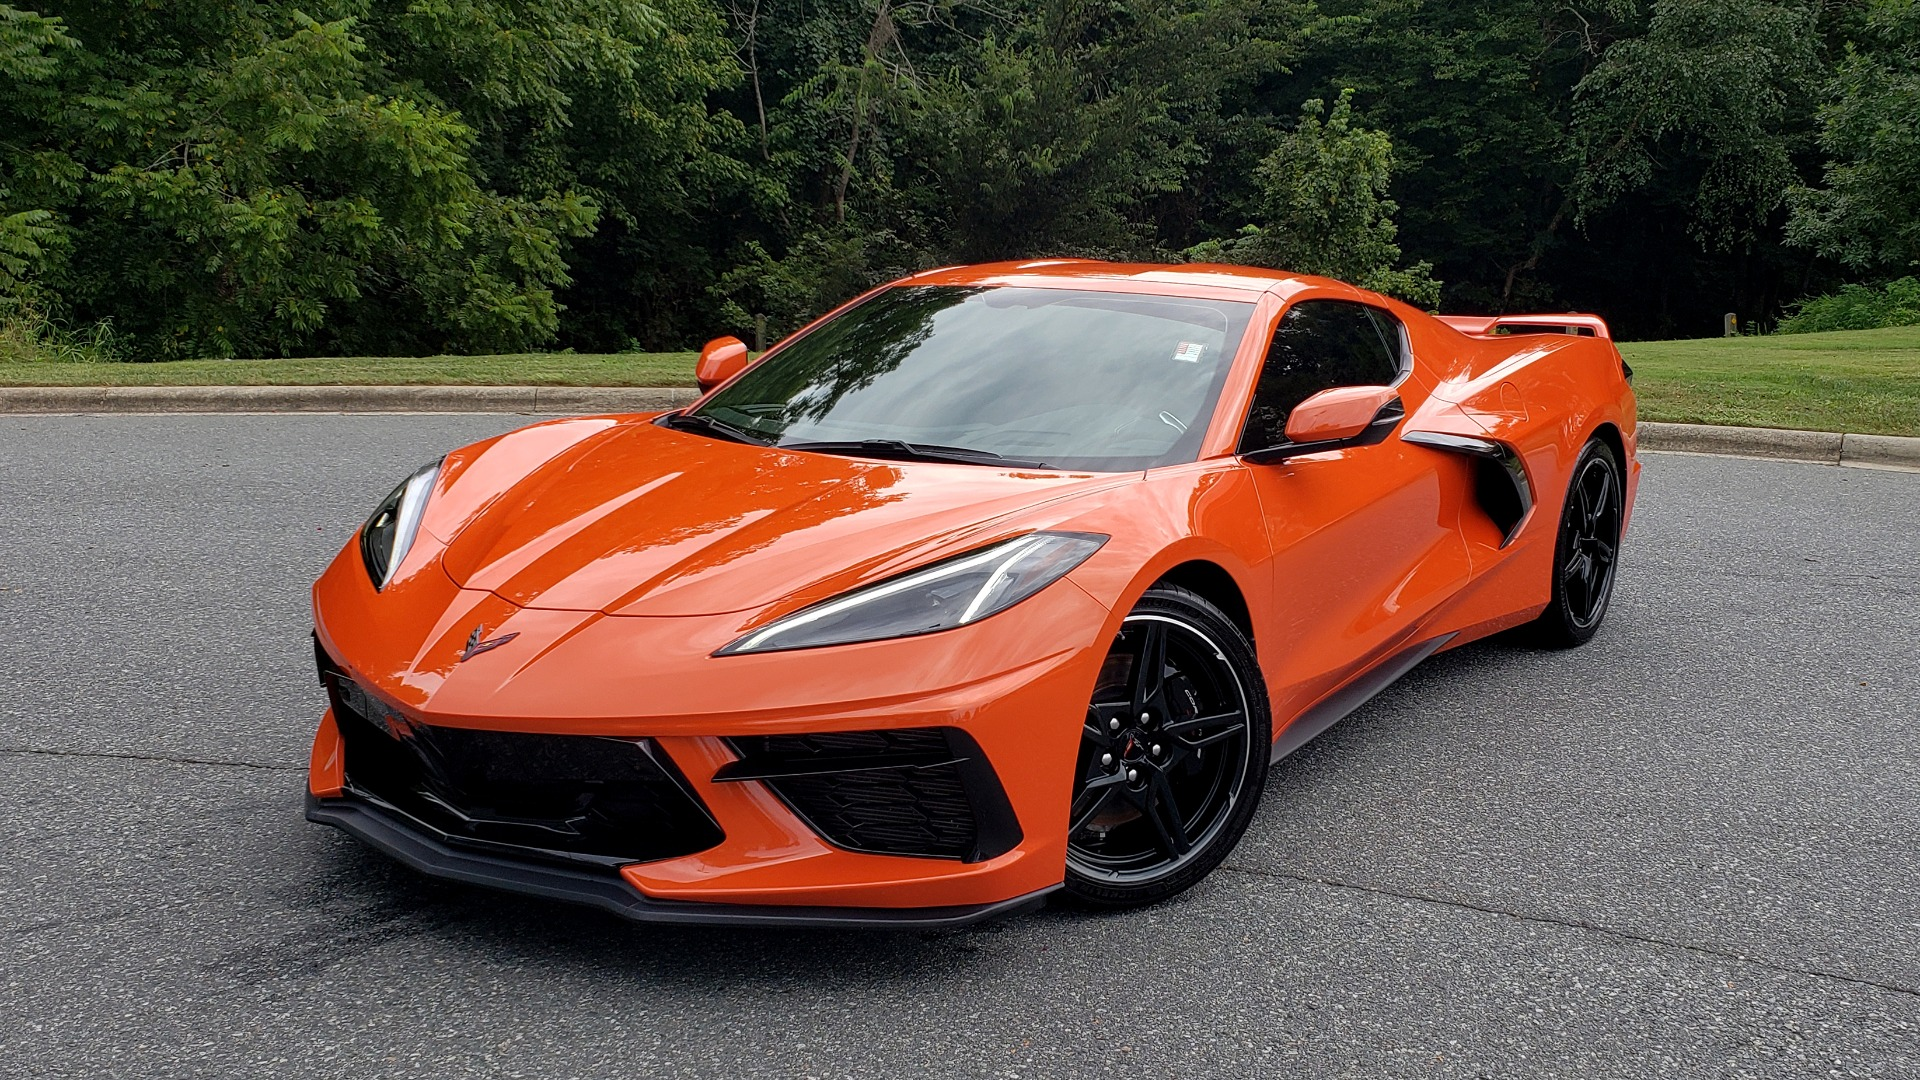 Used 2020 Chevrolet CORVETTE C8 STINGRAY 2LT / 6.2L V8 / 8-SPD AUTO / NAV / BOSE / REARVIEW / DATA RECOR for sale Sold at Formula Imports in Charlotte NC 28227 1